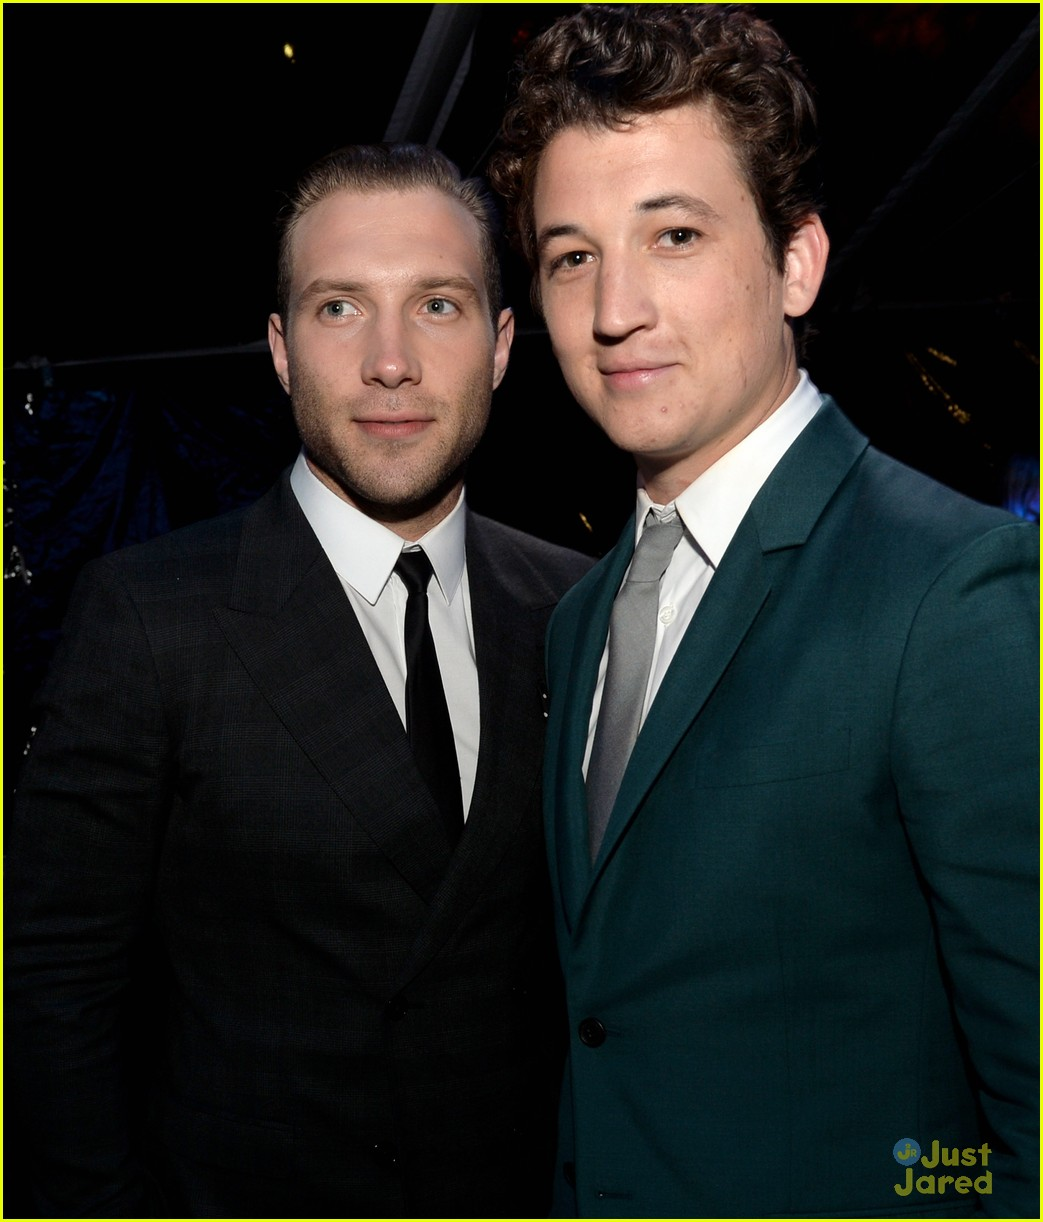 Jai Courtney and Miles Teller at the Divergent premiere in LA